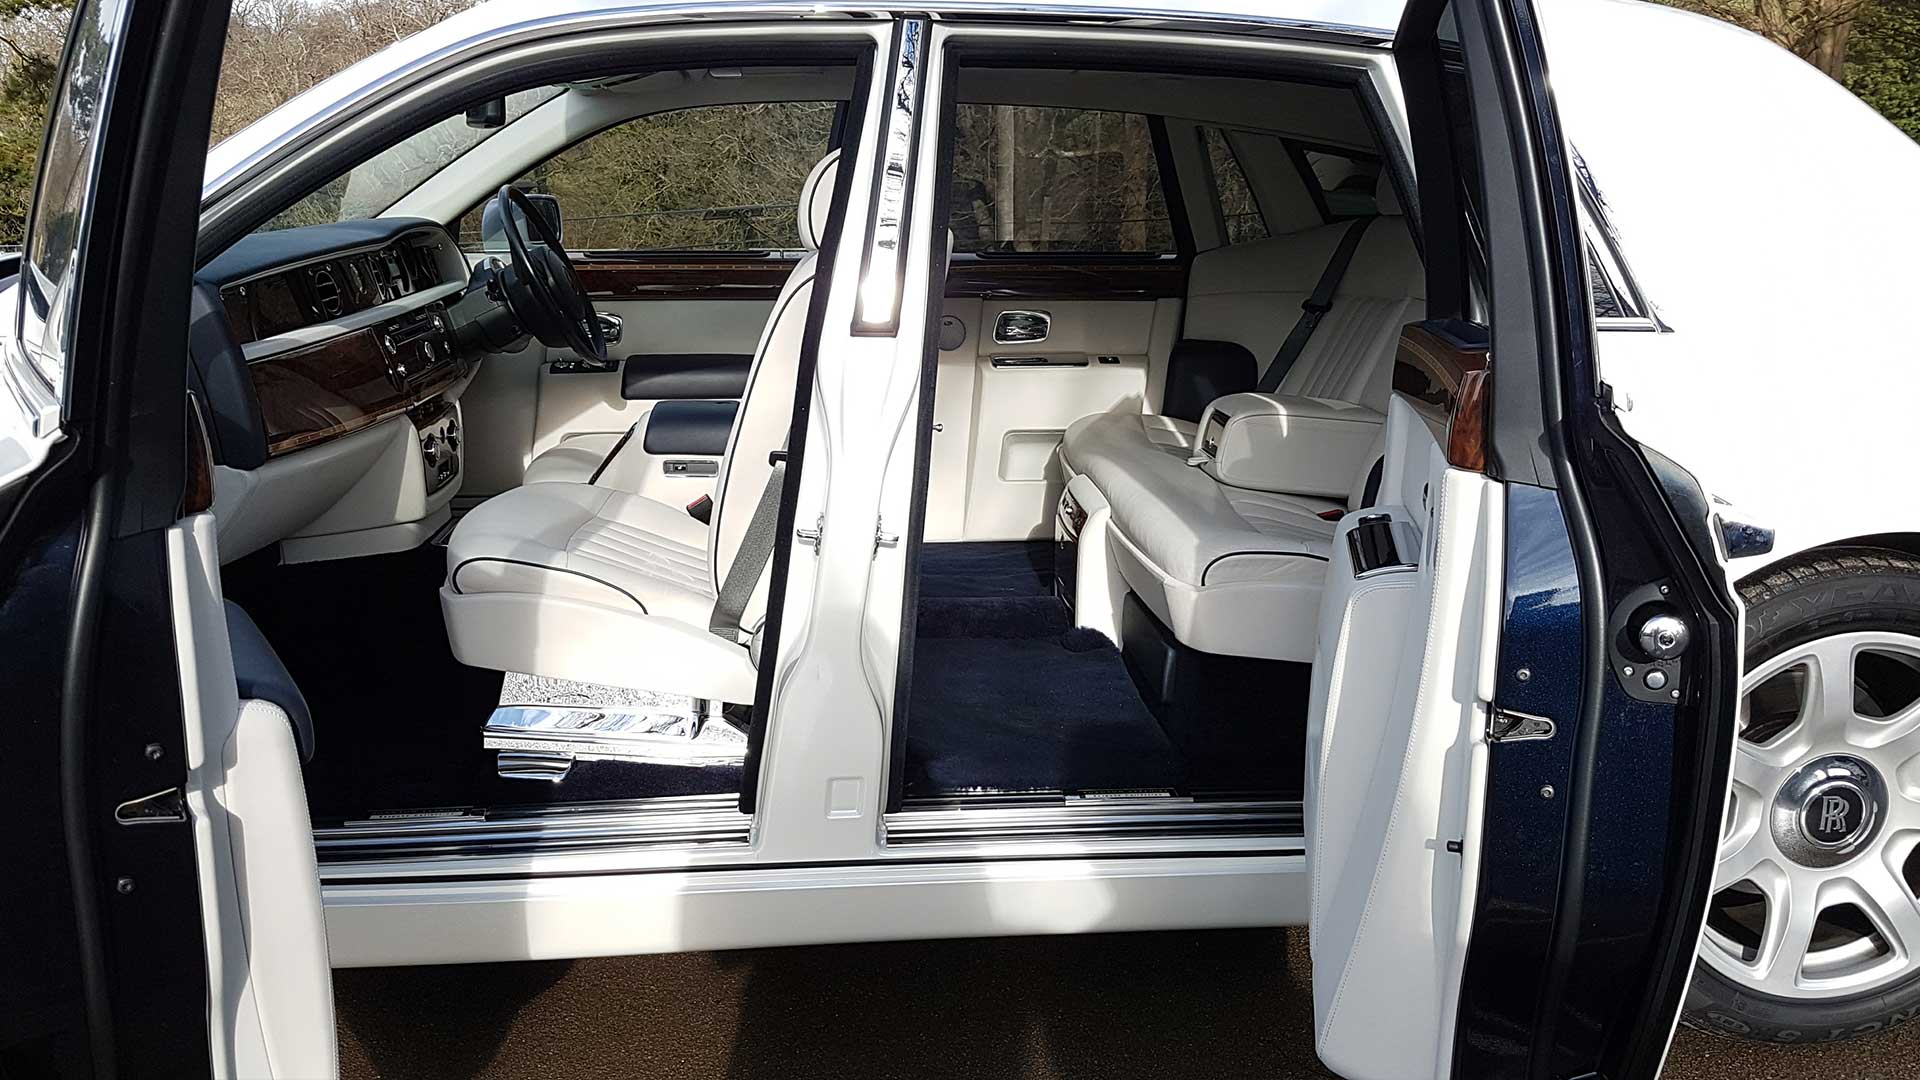 Rolls-Royce Phantom Rear Opening Doors